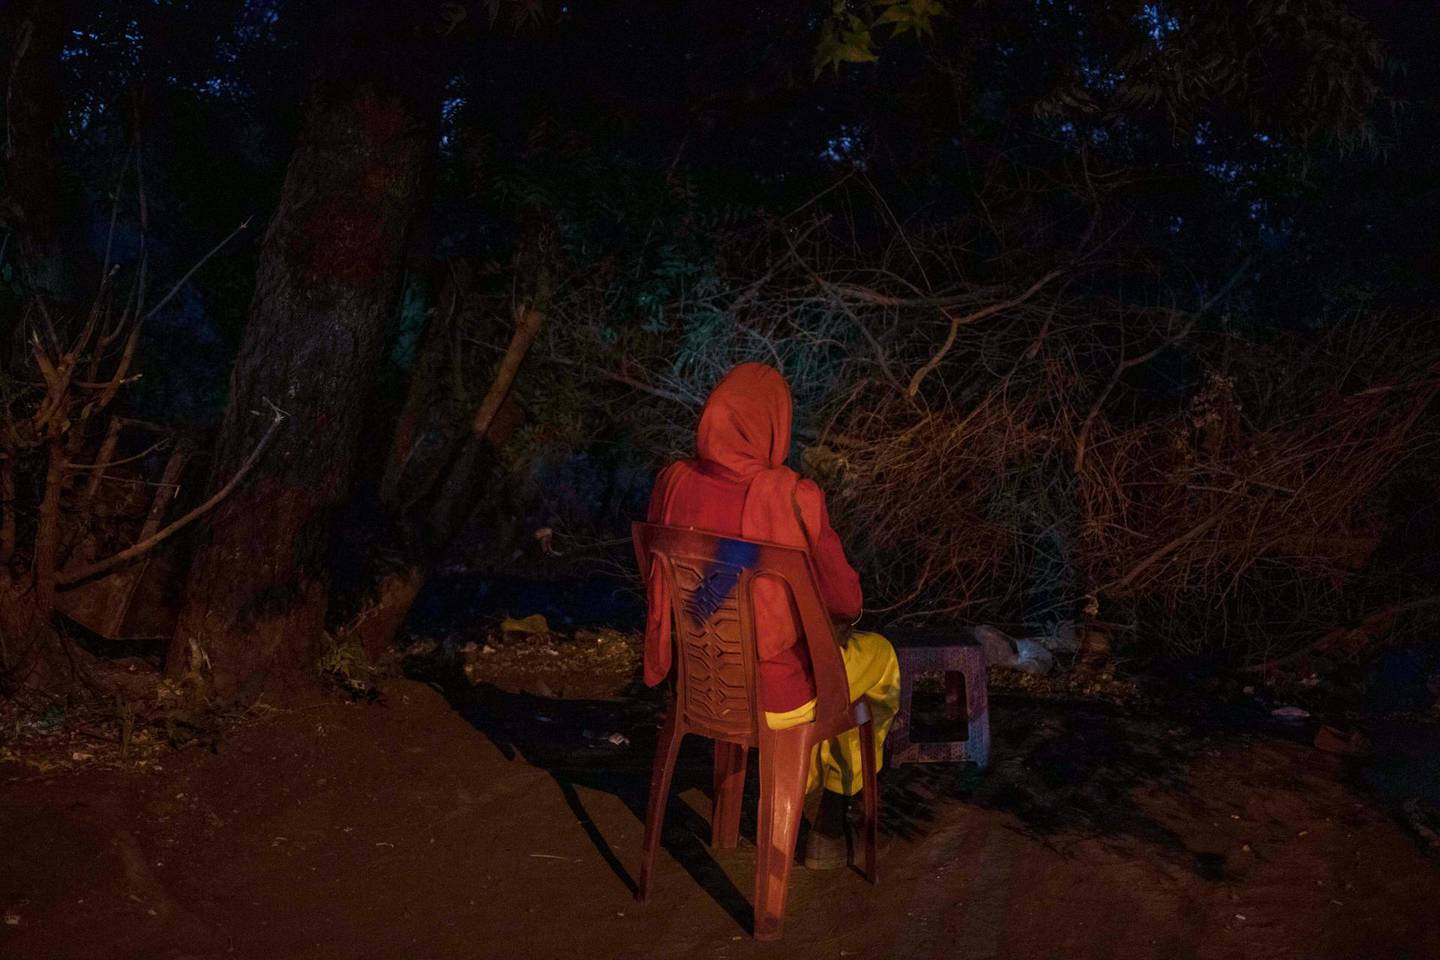 This Jan. 12, 2020 photo shows 22-year-old Mayada, a tea vendor 7-months pregnant with twins, the result of a gang-rape by Sudanese security forces, in Khartoum, Sudan. Dozens of women were raped on June 3, 2019 as security forces attacked a sit-in protest camp in Khartoum, according to activists' counts. Mayada wanted to end the pregnancy, but a pharmacist refused to sell her pills to cause an abortion. She hurt herself, lifting heavy objects and throwing herself off furniture, hoping for a miscarriage. She gave birth in March to a daughter, while the other twin, a boy, died. She doesn't know the names of the men who raped her, much less which is the father. (AP Photo/Nariman El-Mofty)